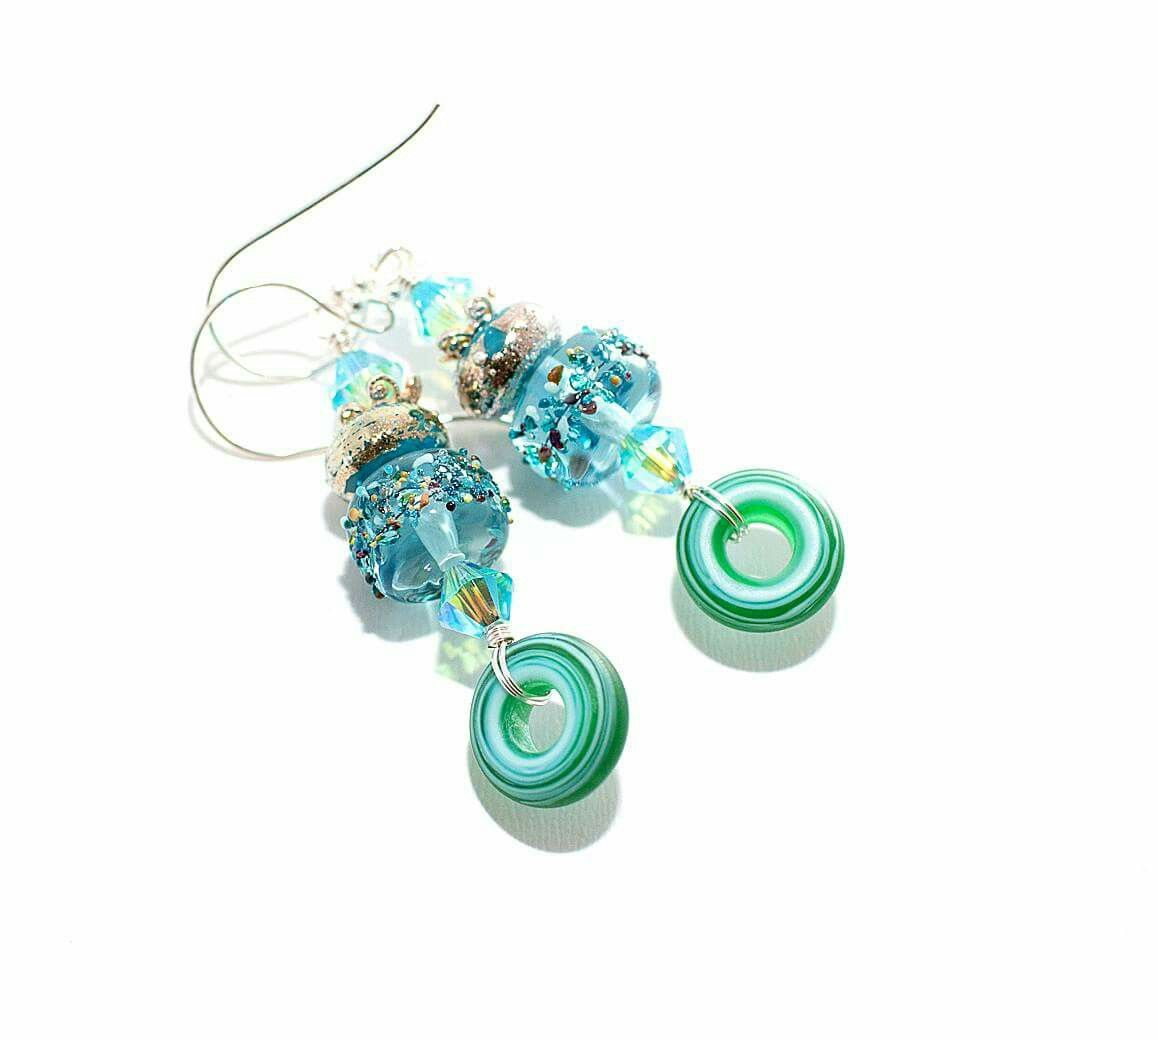 Loving these earrings from the wild woman that is Meredith! Featuring my blue beachcomber beads!  Just two light and luscious inches long on sterling silver artisan wires and in seaside colors.  Perfect for July, and always.  etsy.com/shop/wildwomanbeads  www.facebook.com/wildwomanbeads  #glitteringprizeglass #collaboration #handmade #giftforher #earrings #lampwork #artisan